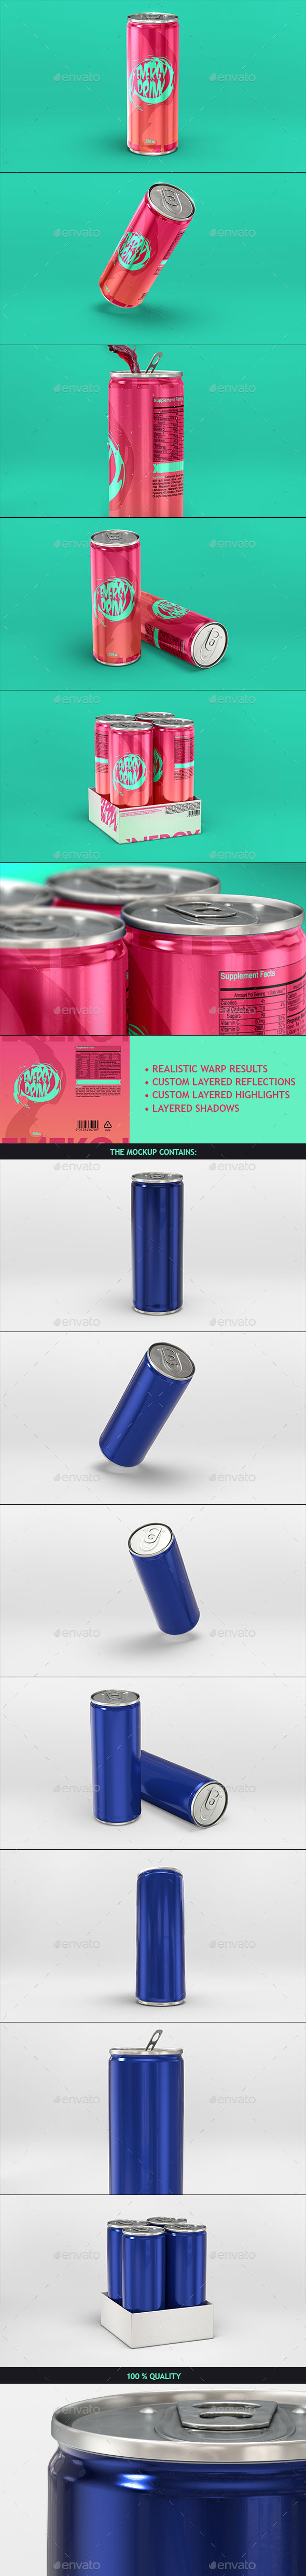 GraphicRiver Energy Drink Soda Can Mockup 9917417